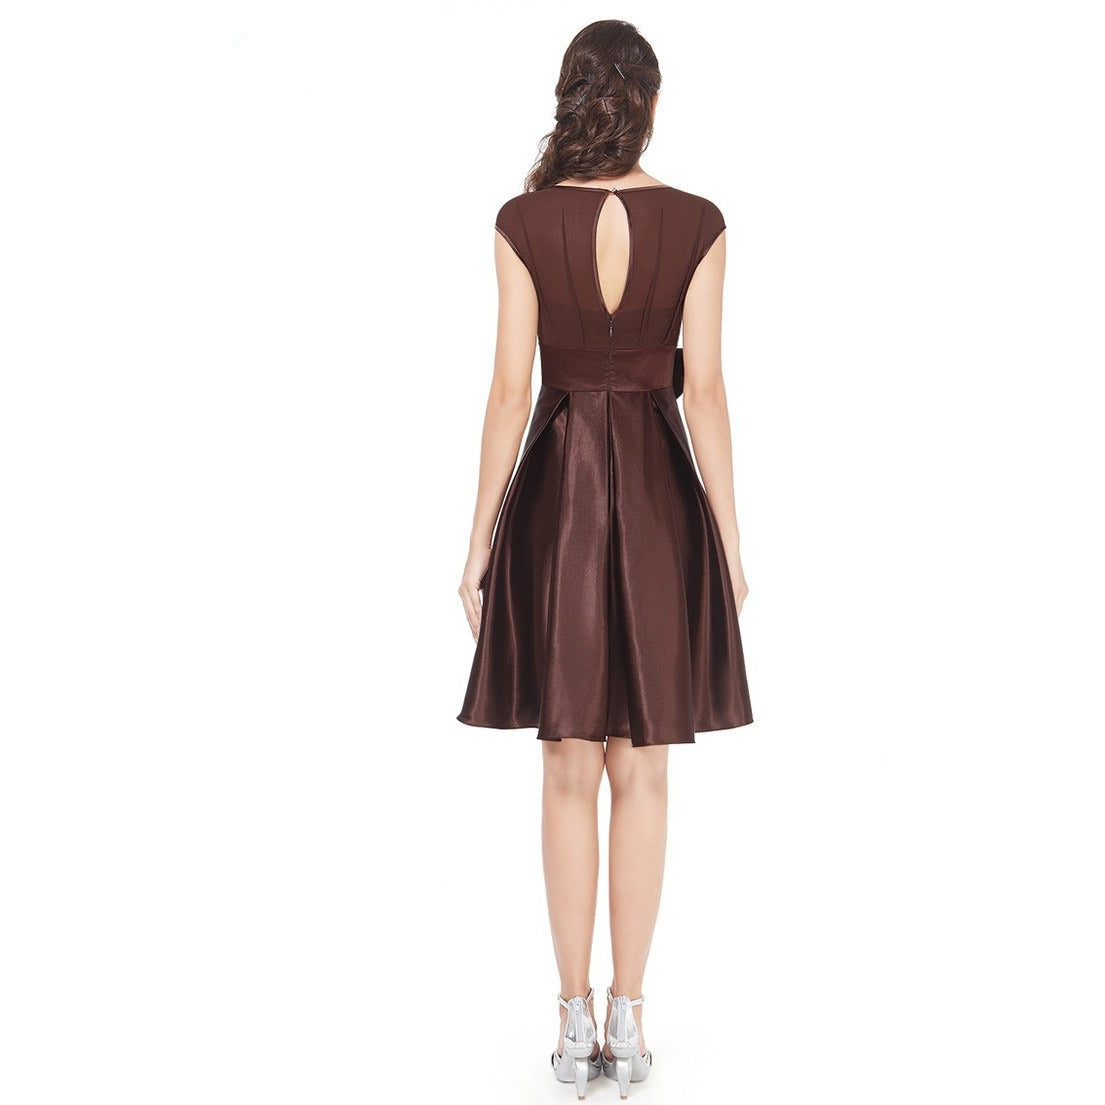 Women's Knee Length Cocktail Dress - Indifashion.org